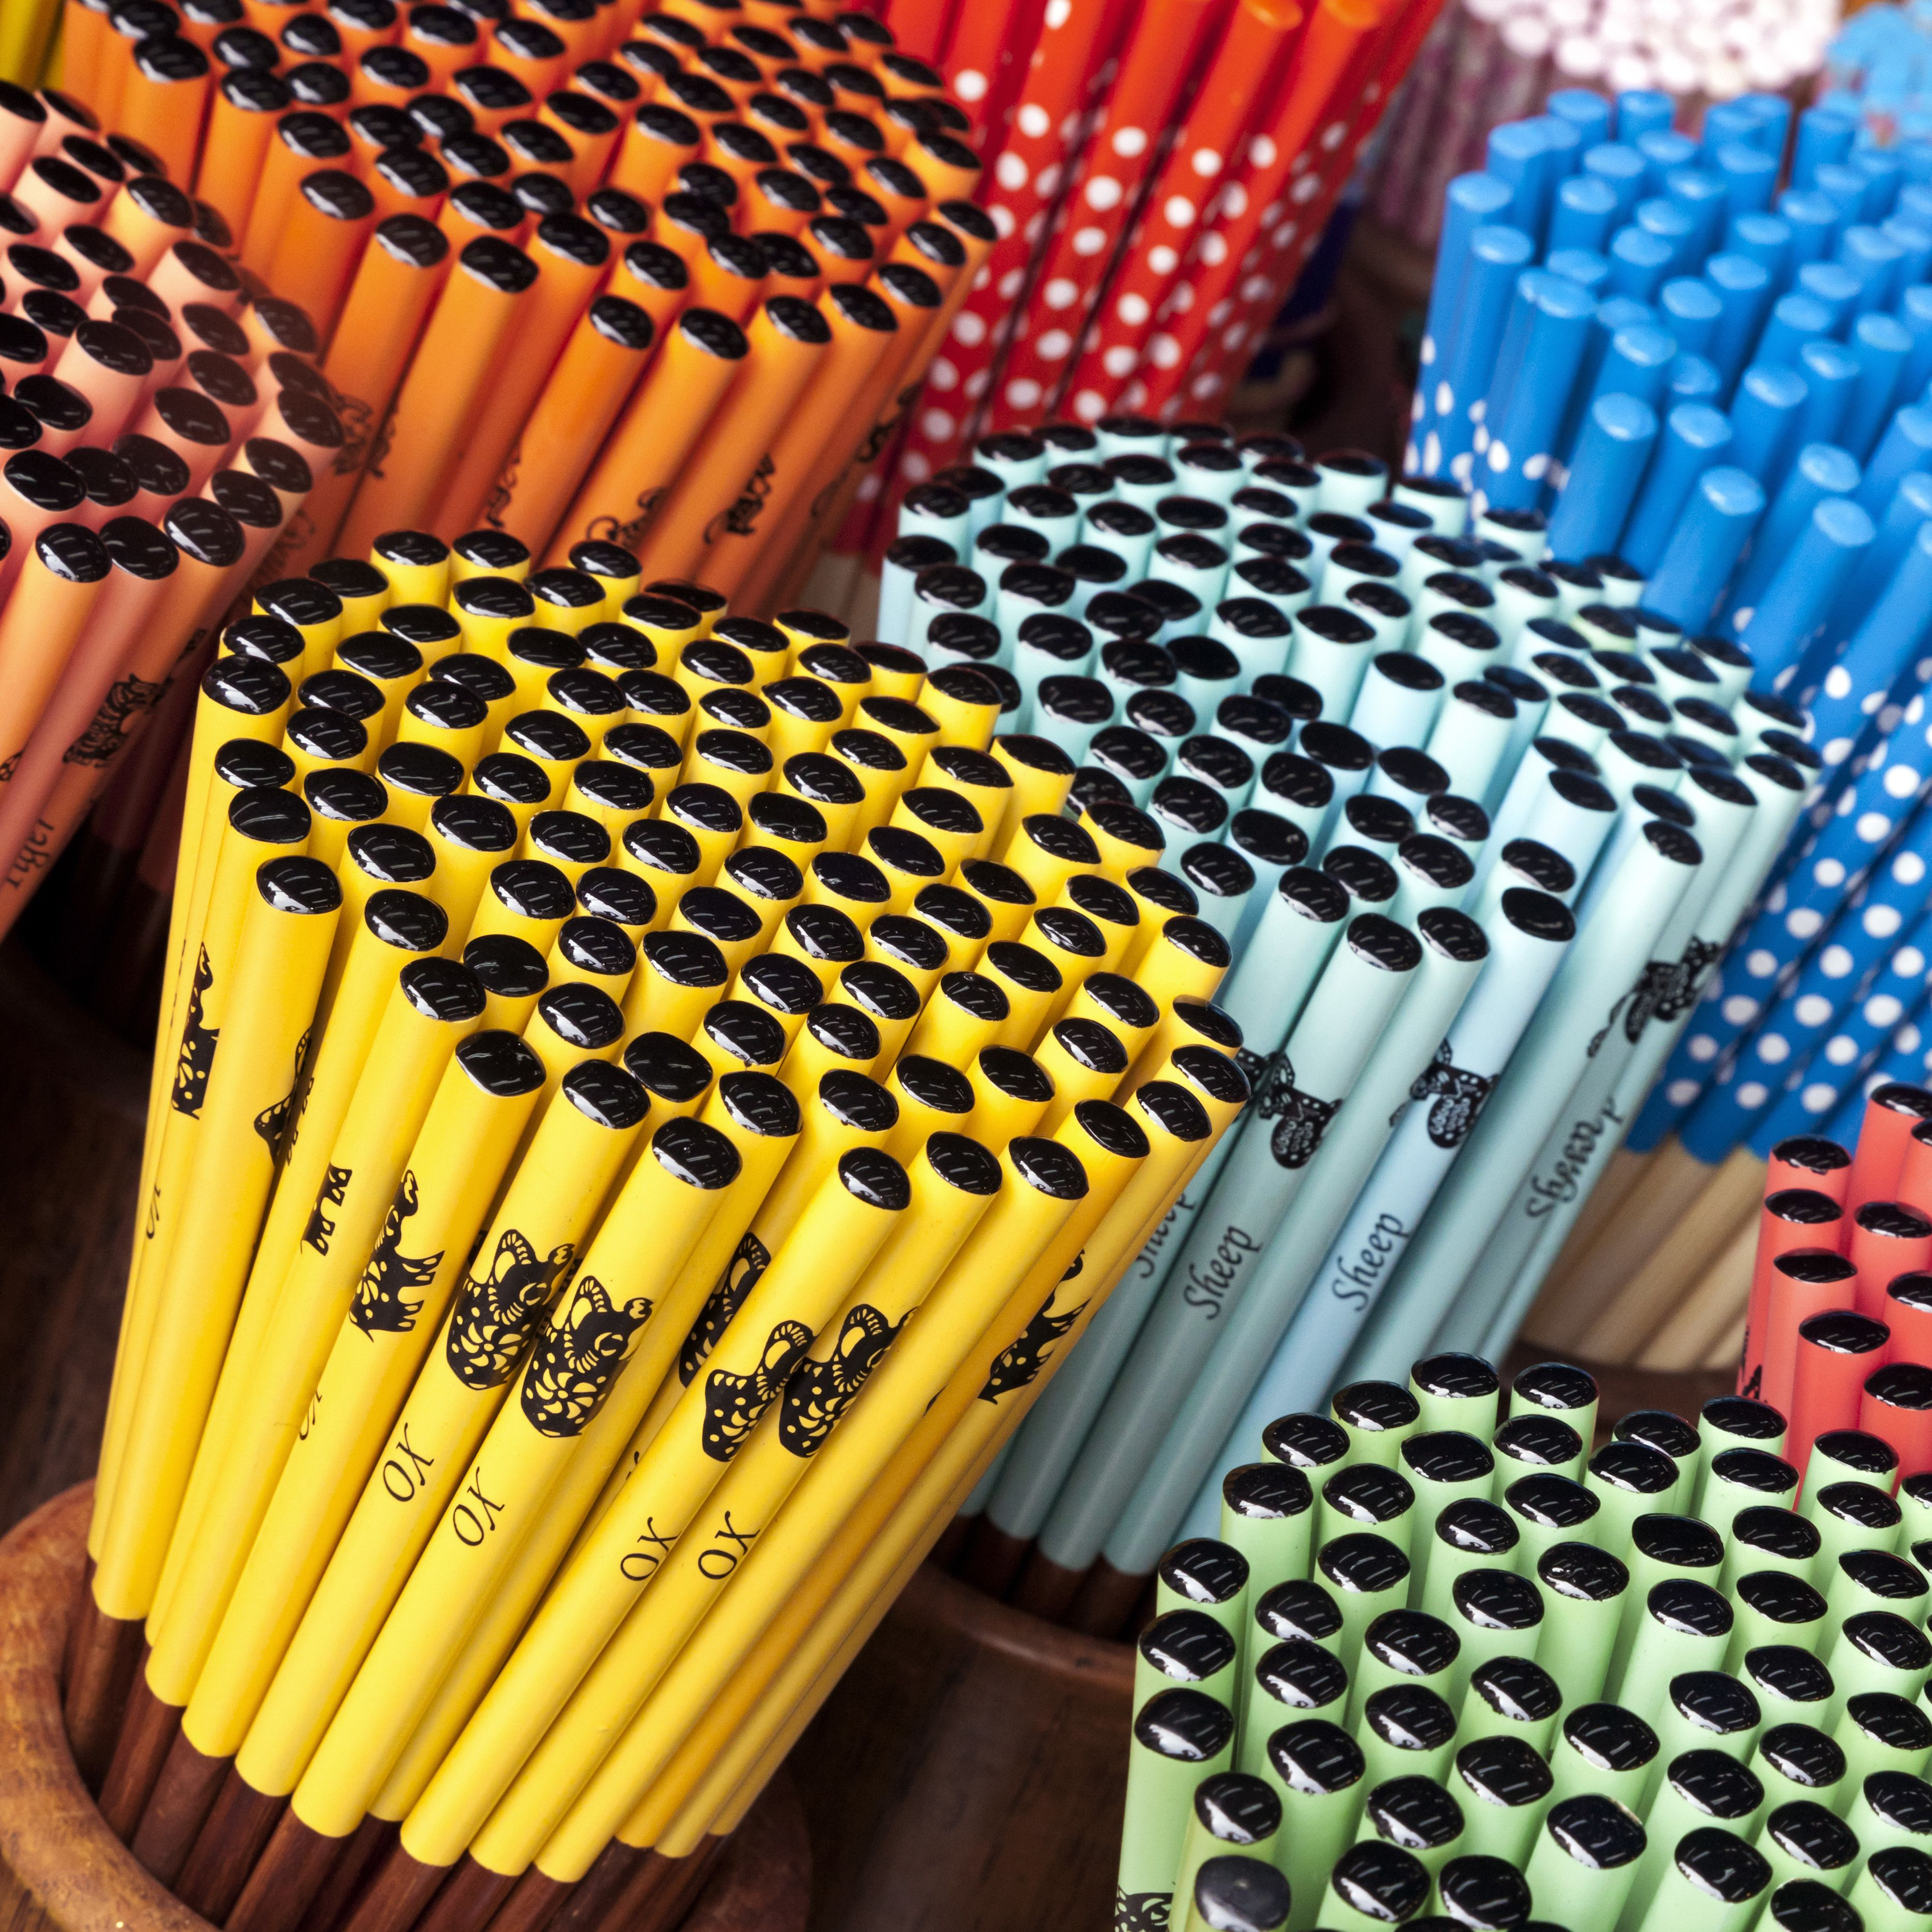 Colourful decorative Chopsticks for sale as souvenirs to tourists in Chinatown market, Temple Street, Singapore